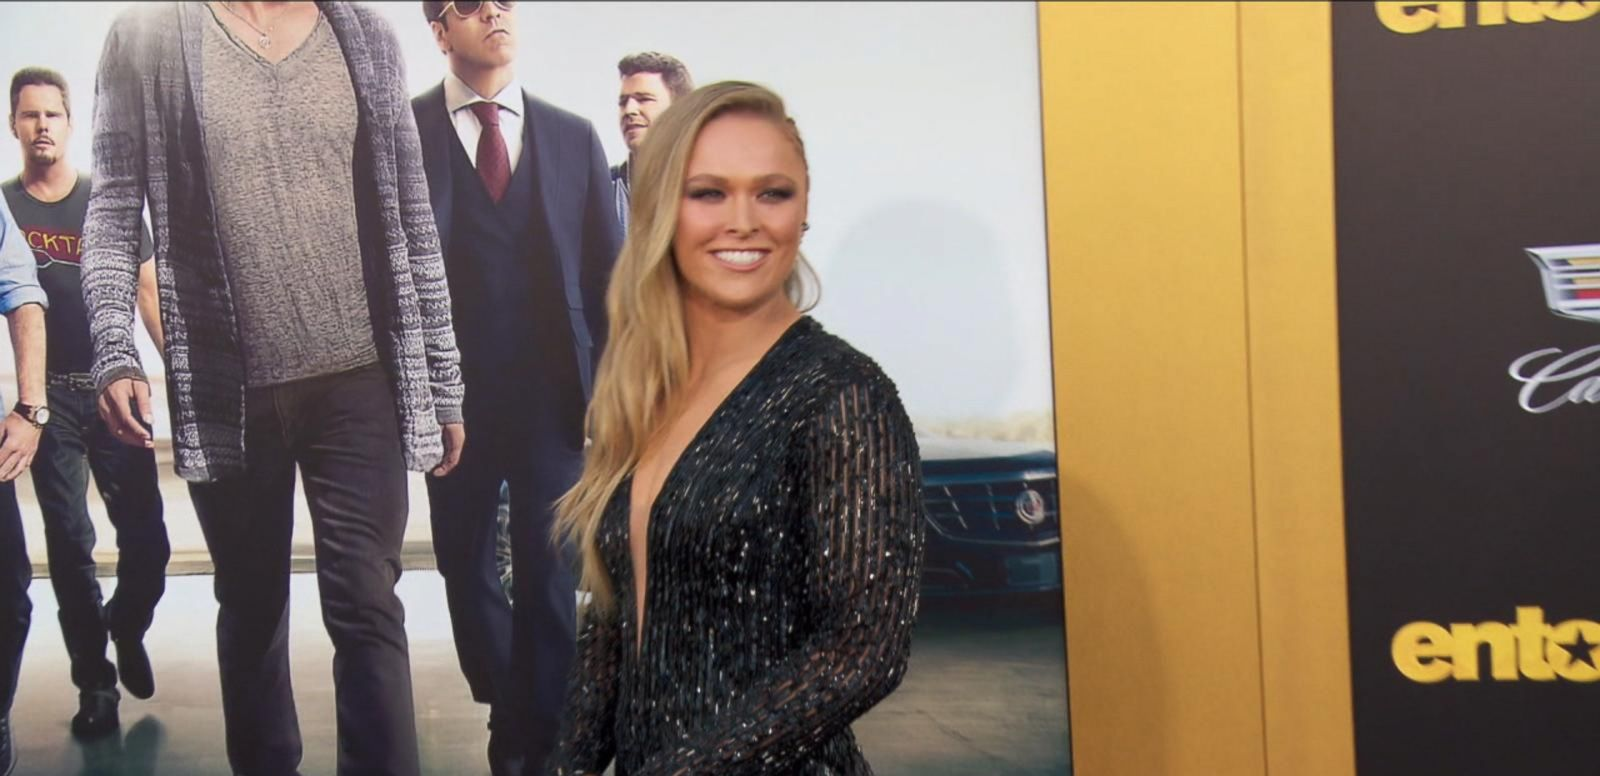 VIDEO: Ronda Rousey Calls Out Justin Bieber, Emma Stone's Music Video And More In Pop News